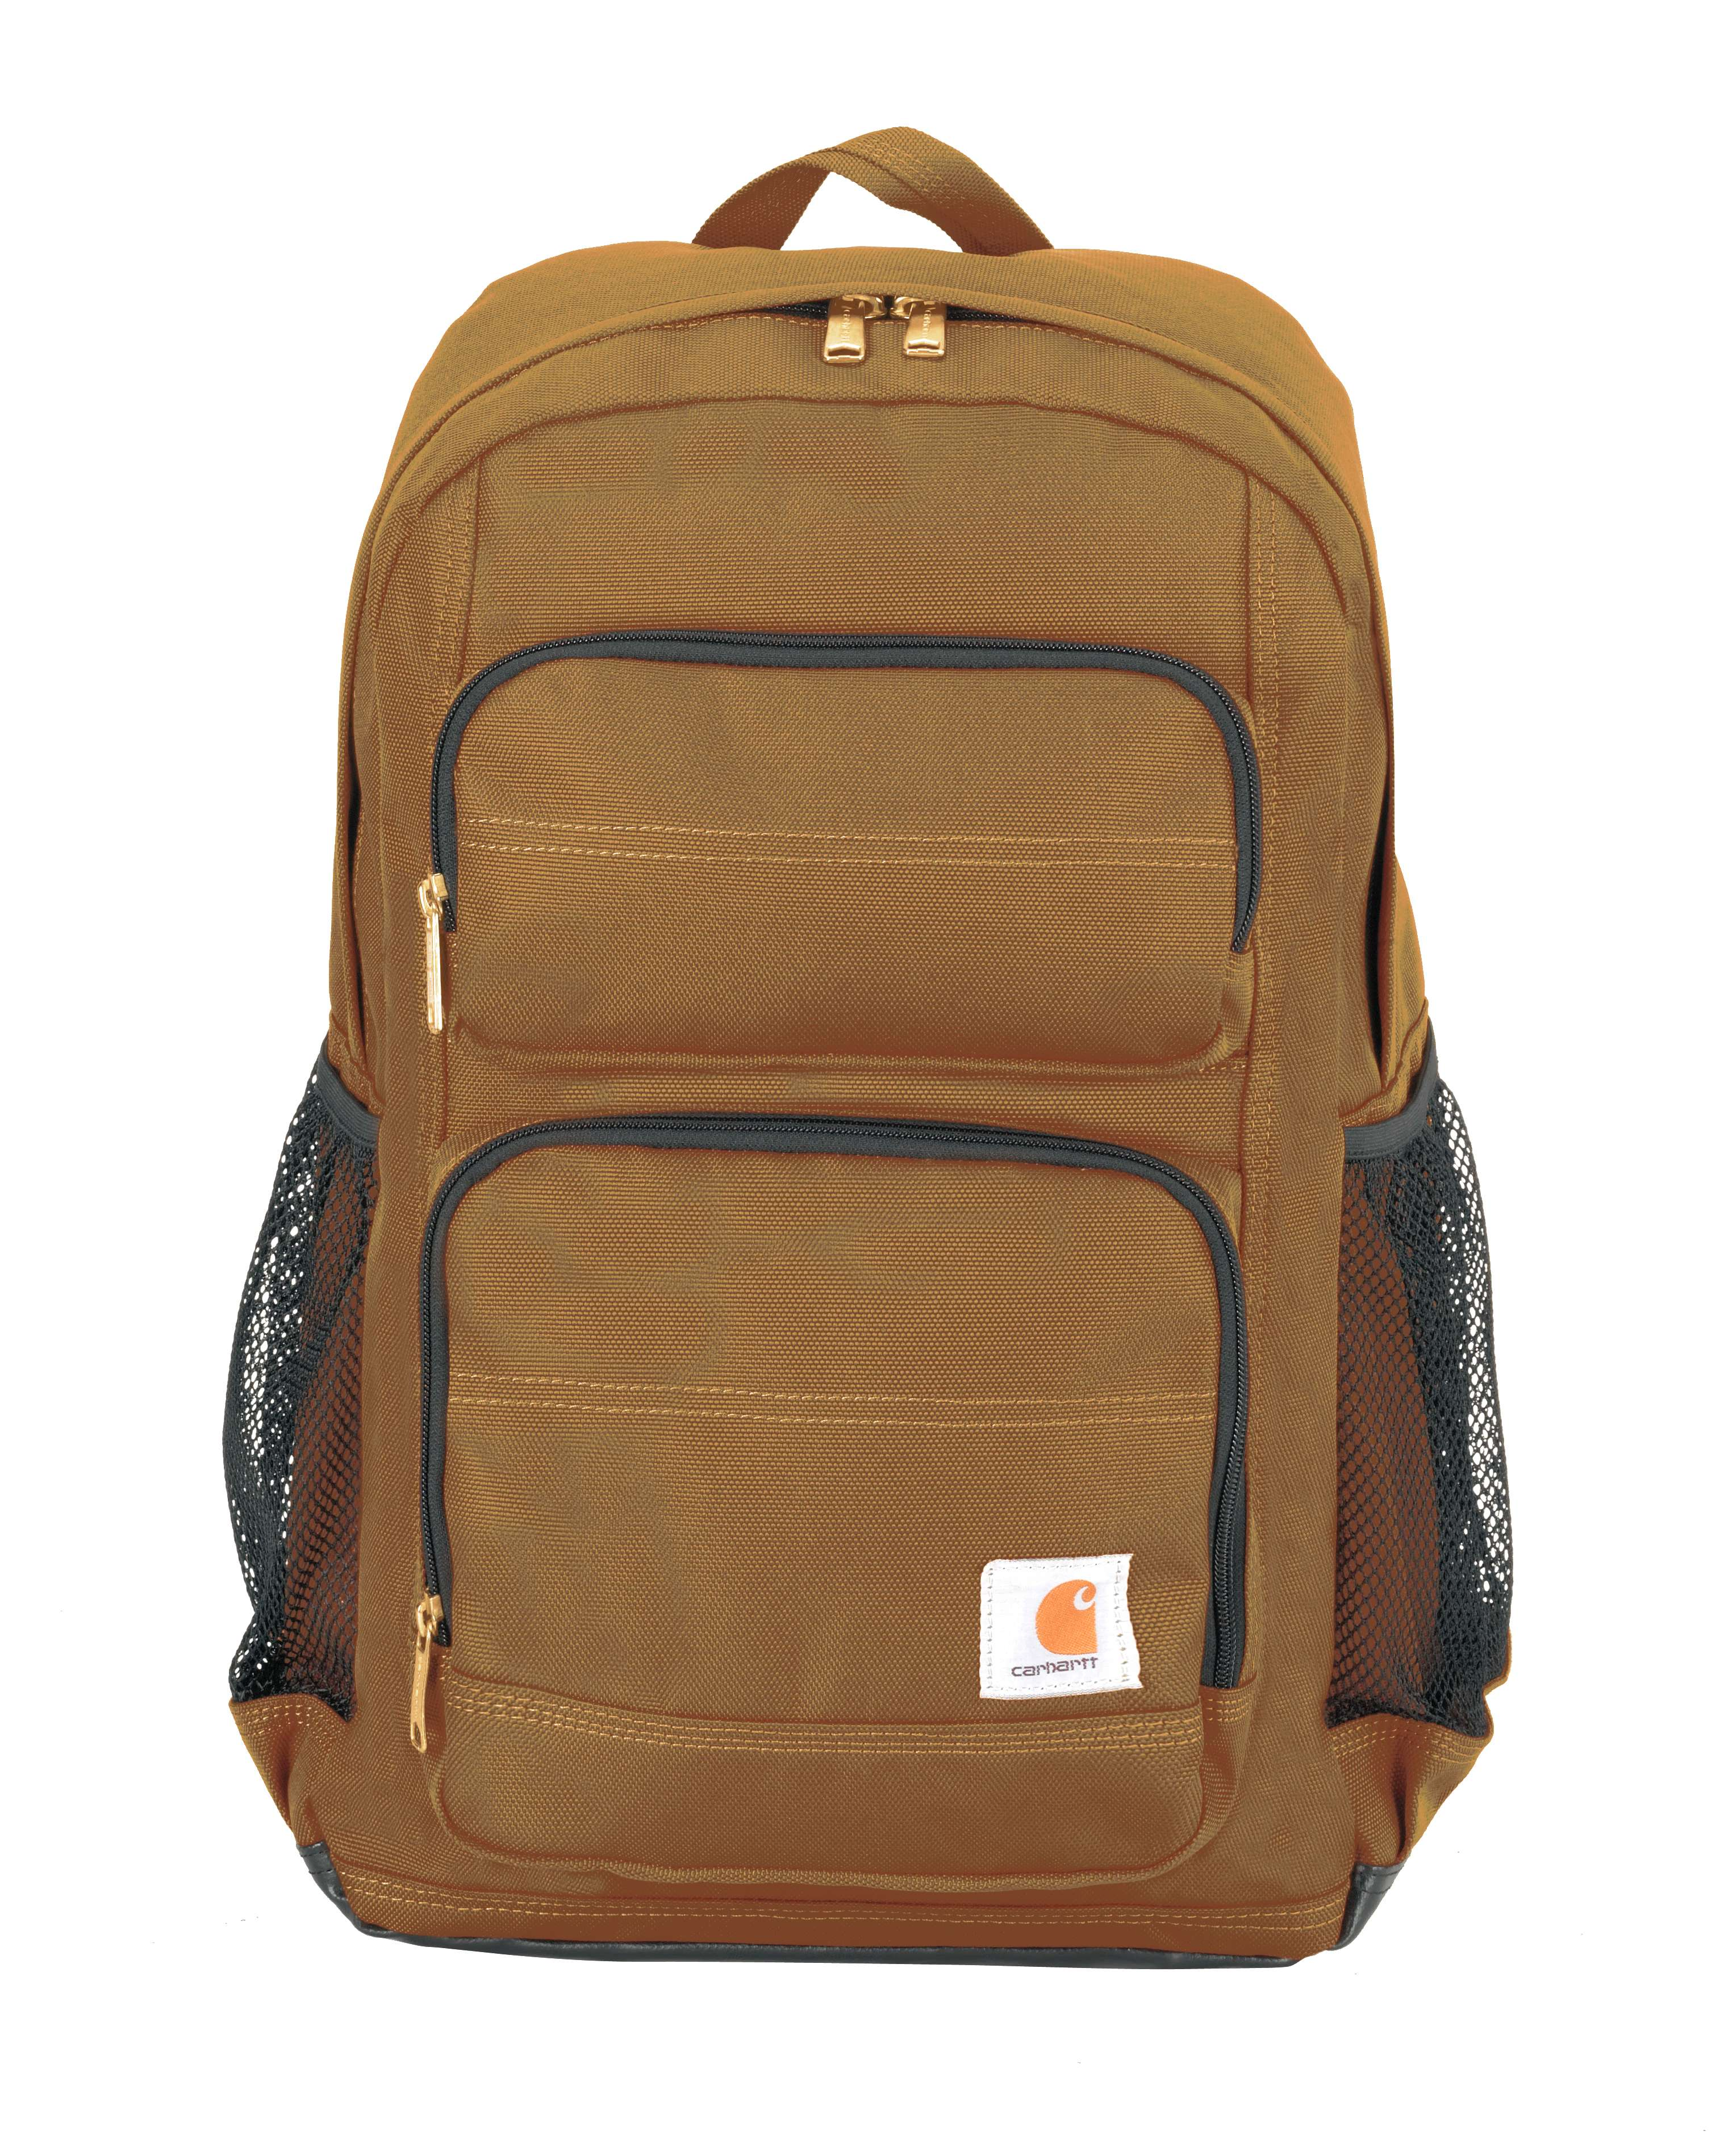 photo of a Carhartt backpack